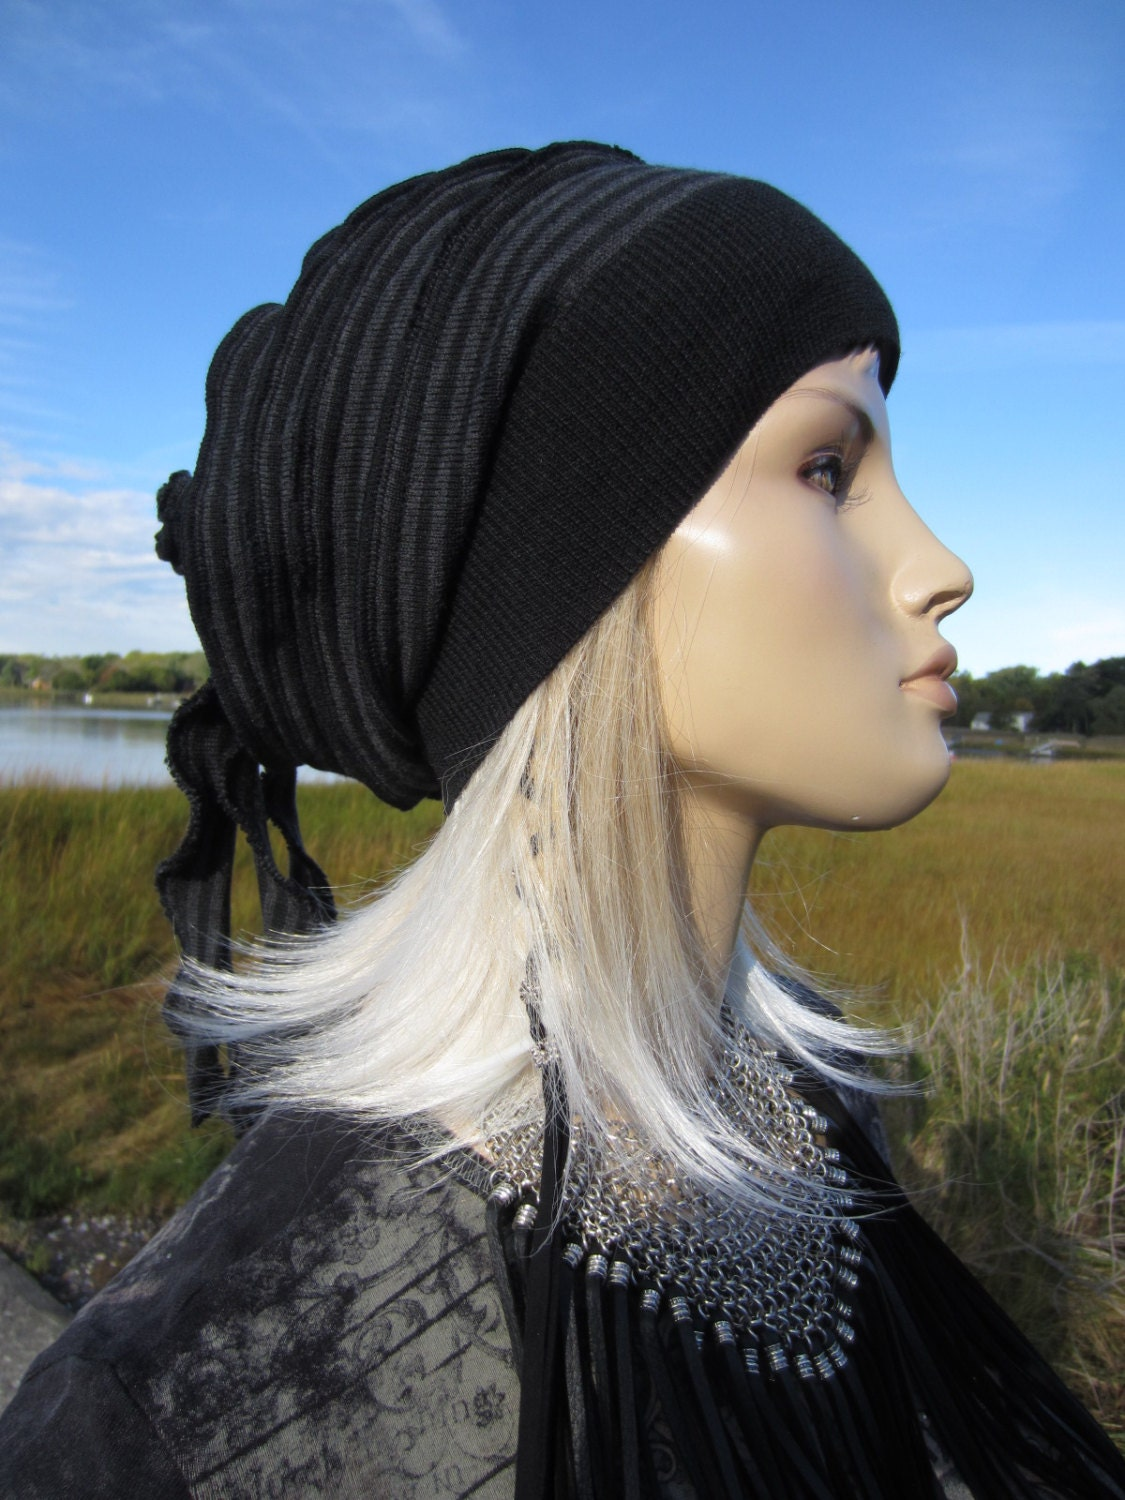 347d141913bef Cute Hats for Women Slouchy Beanies Slouch Tams Merino Wool Black ...